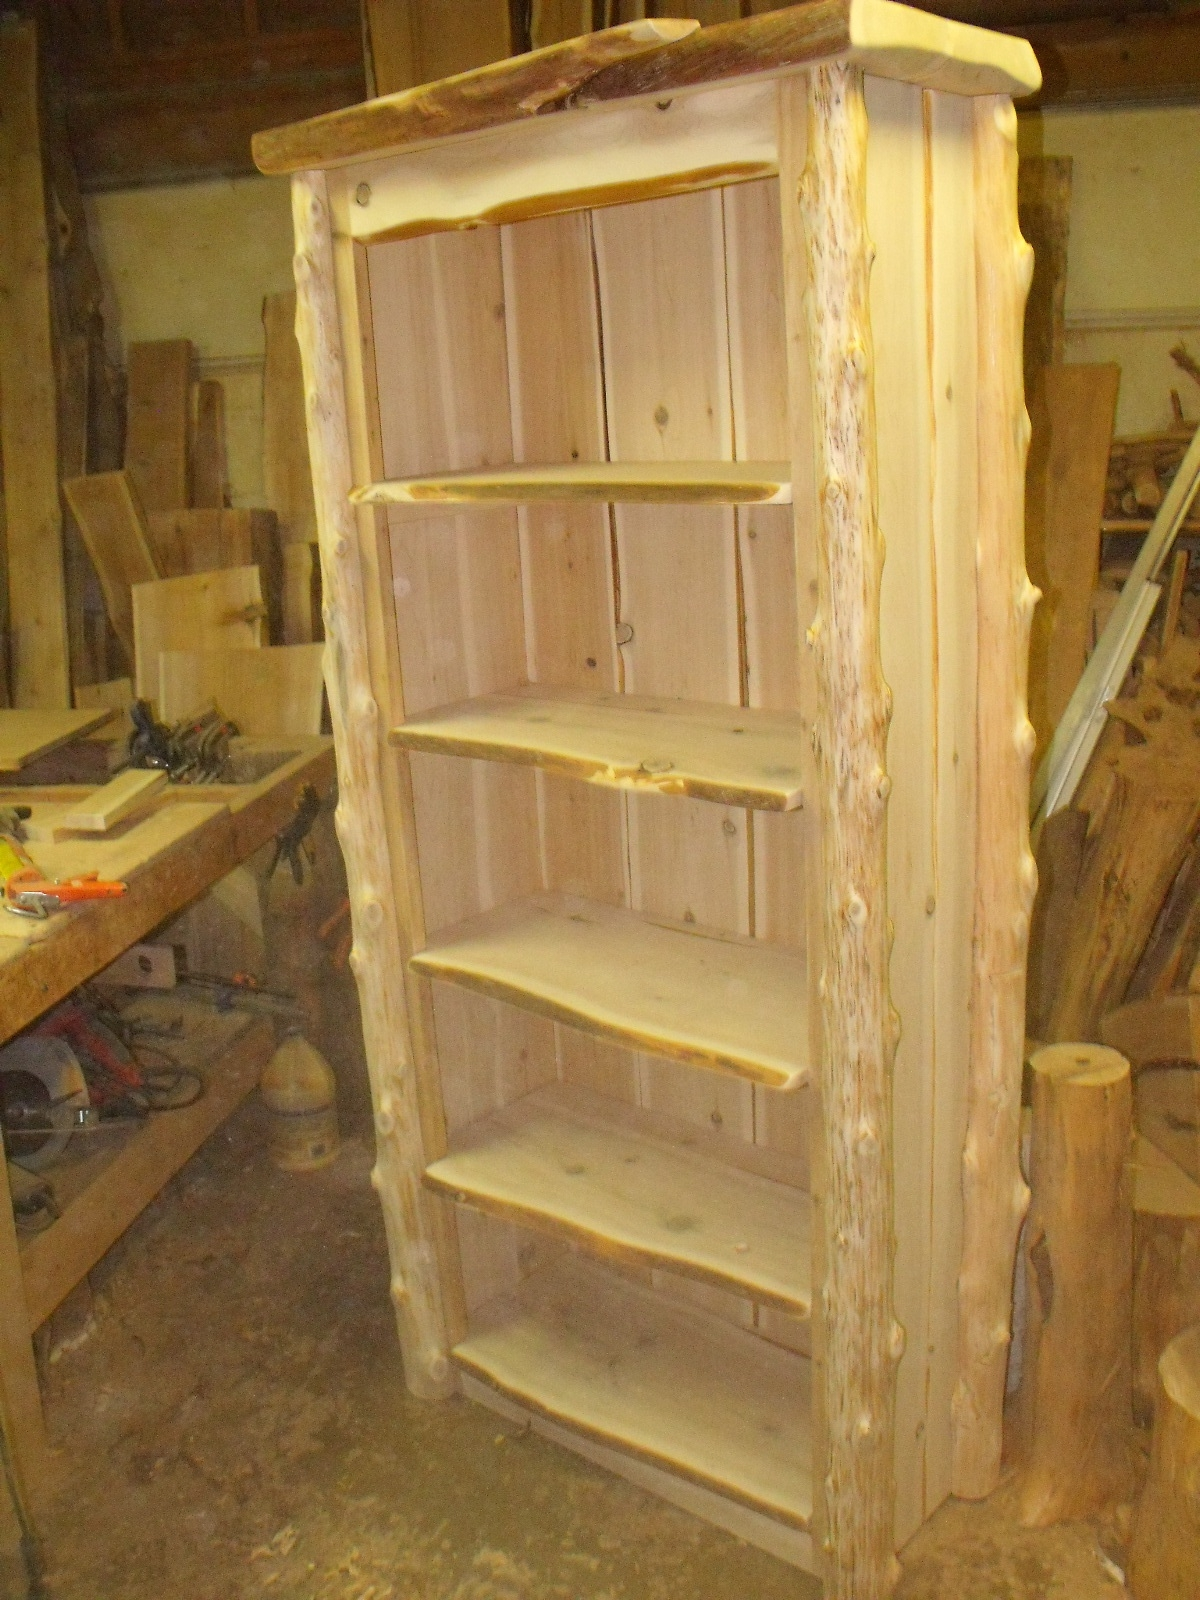 Favorite Rustic Bookcases Inside Rustic Bookcases  Rustic Bookcases (View 4 of 15)